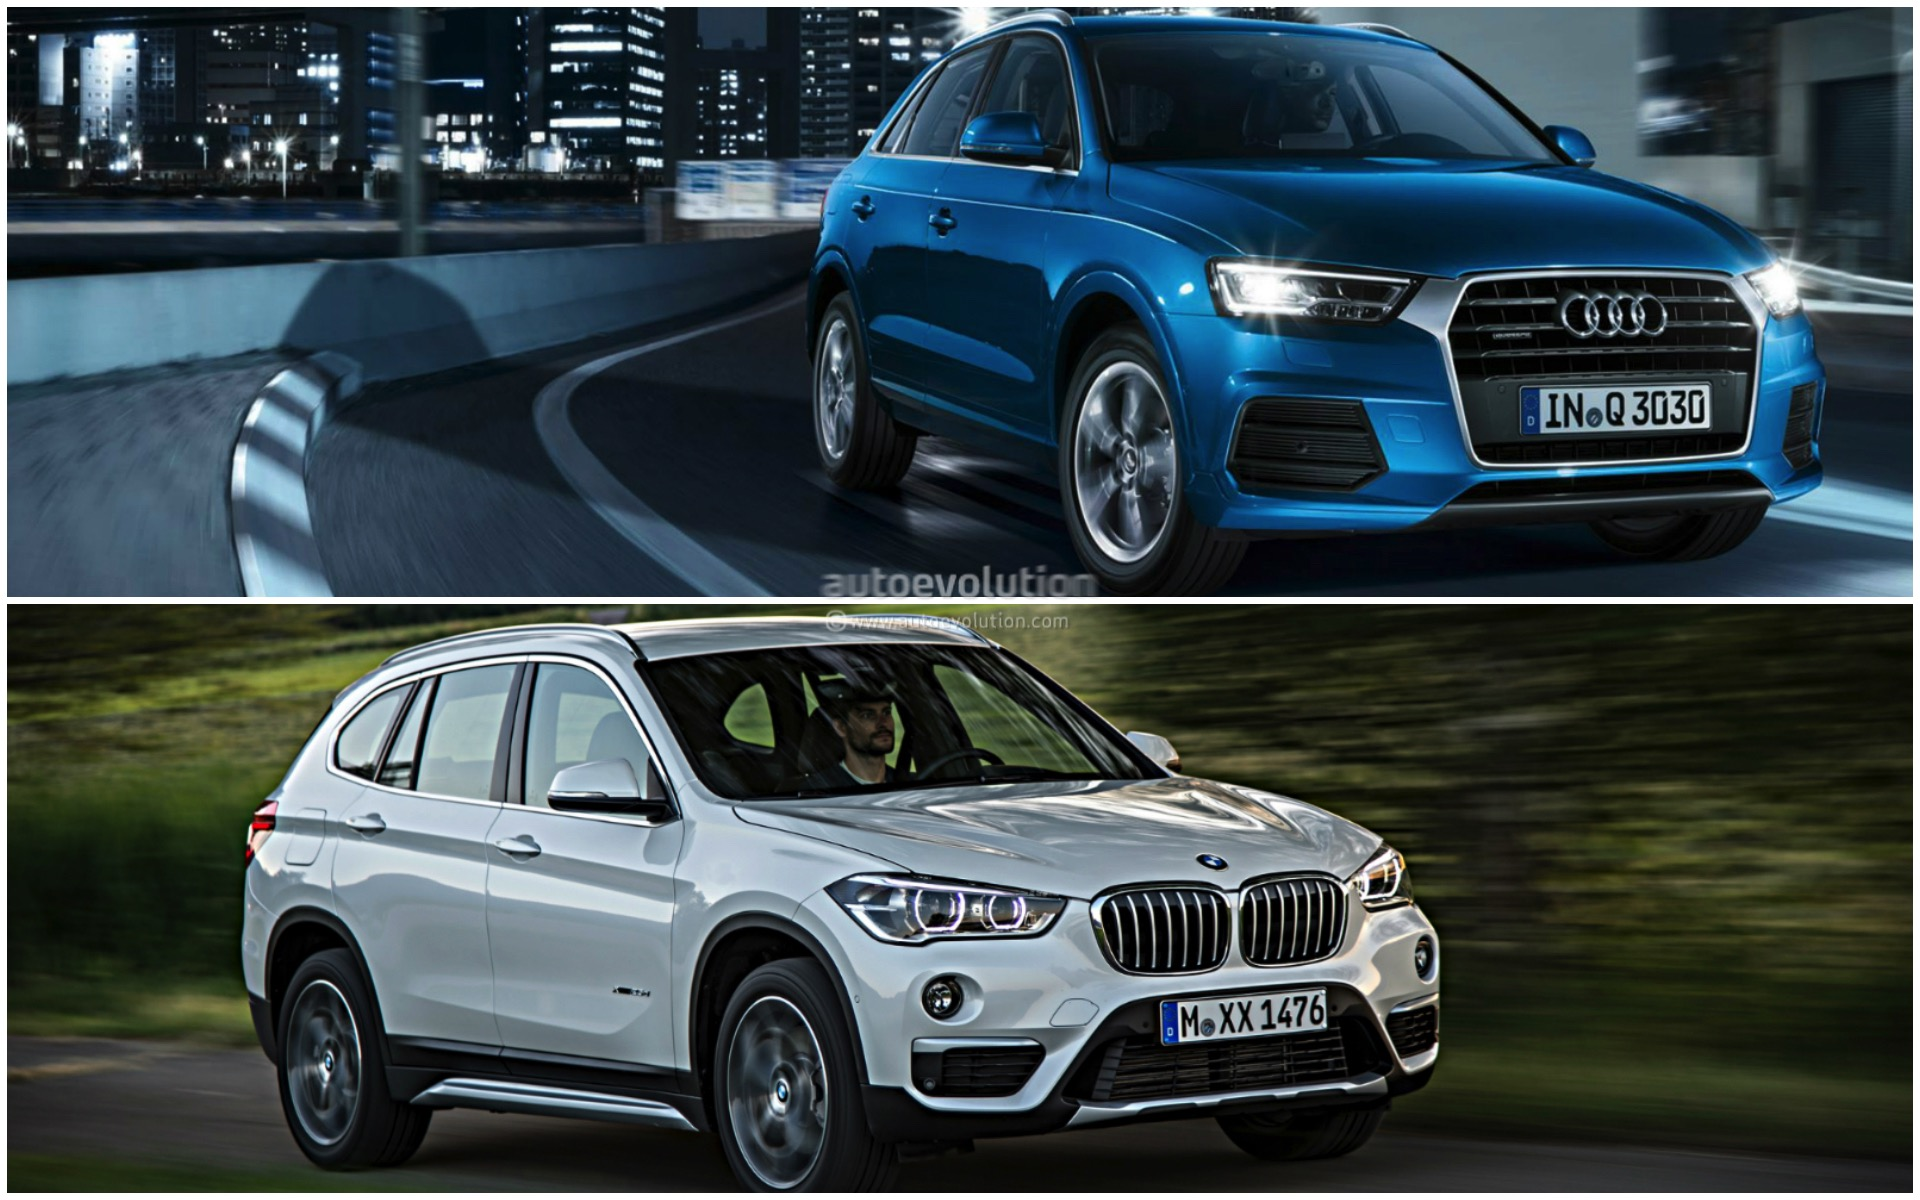 19 Photos Bmw F48 X1 Vs Audi Q3